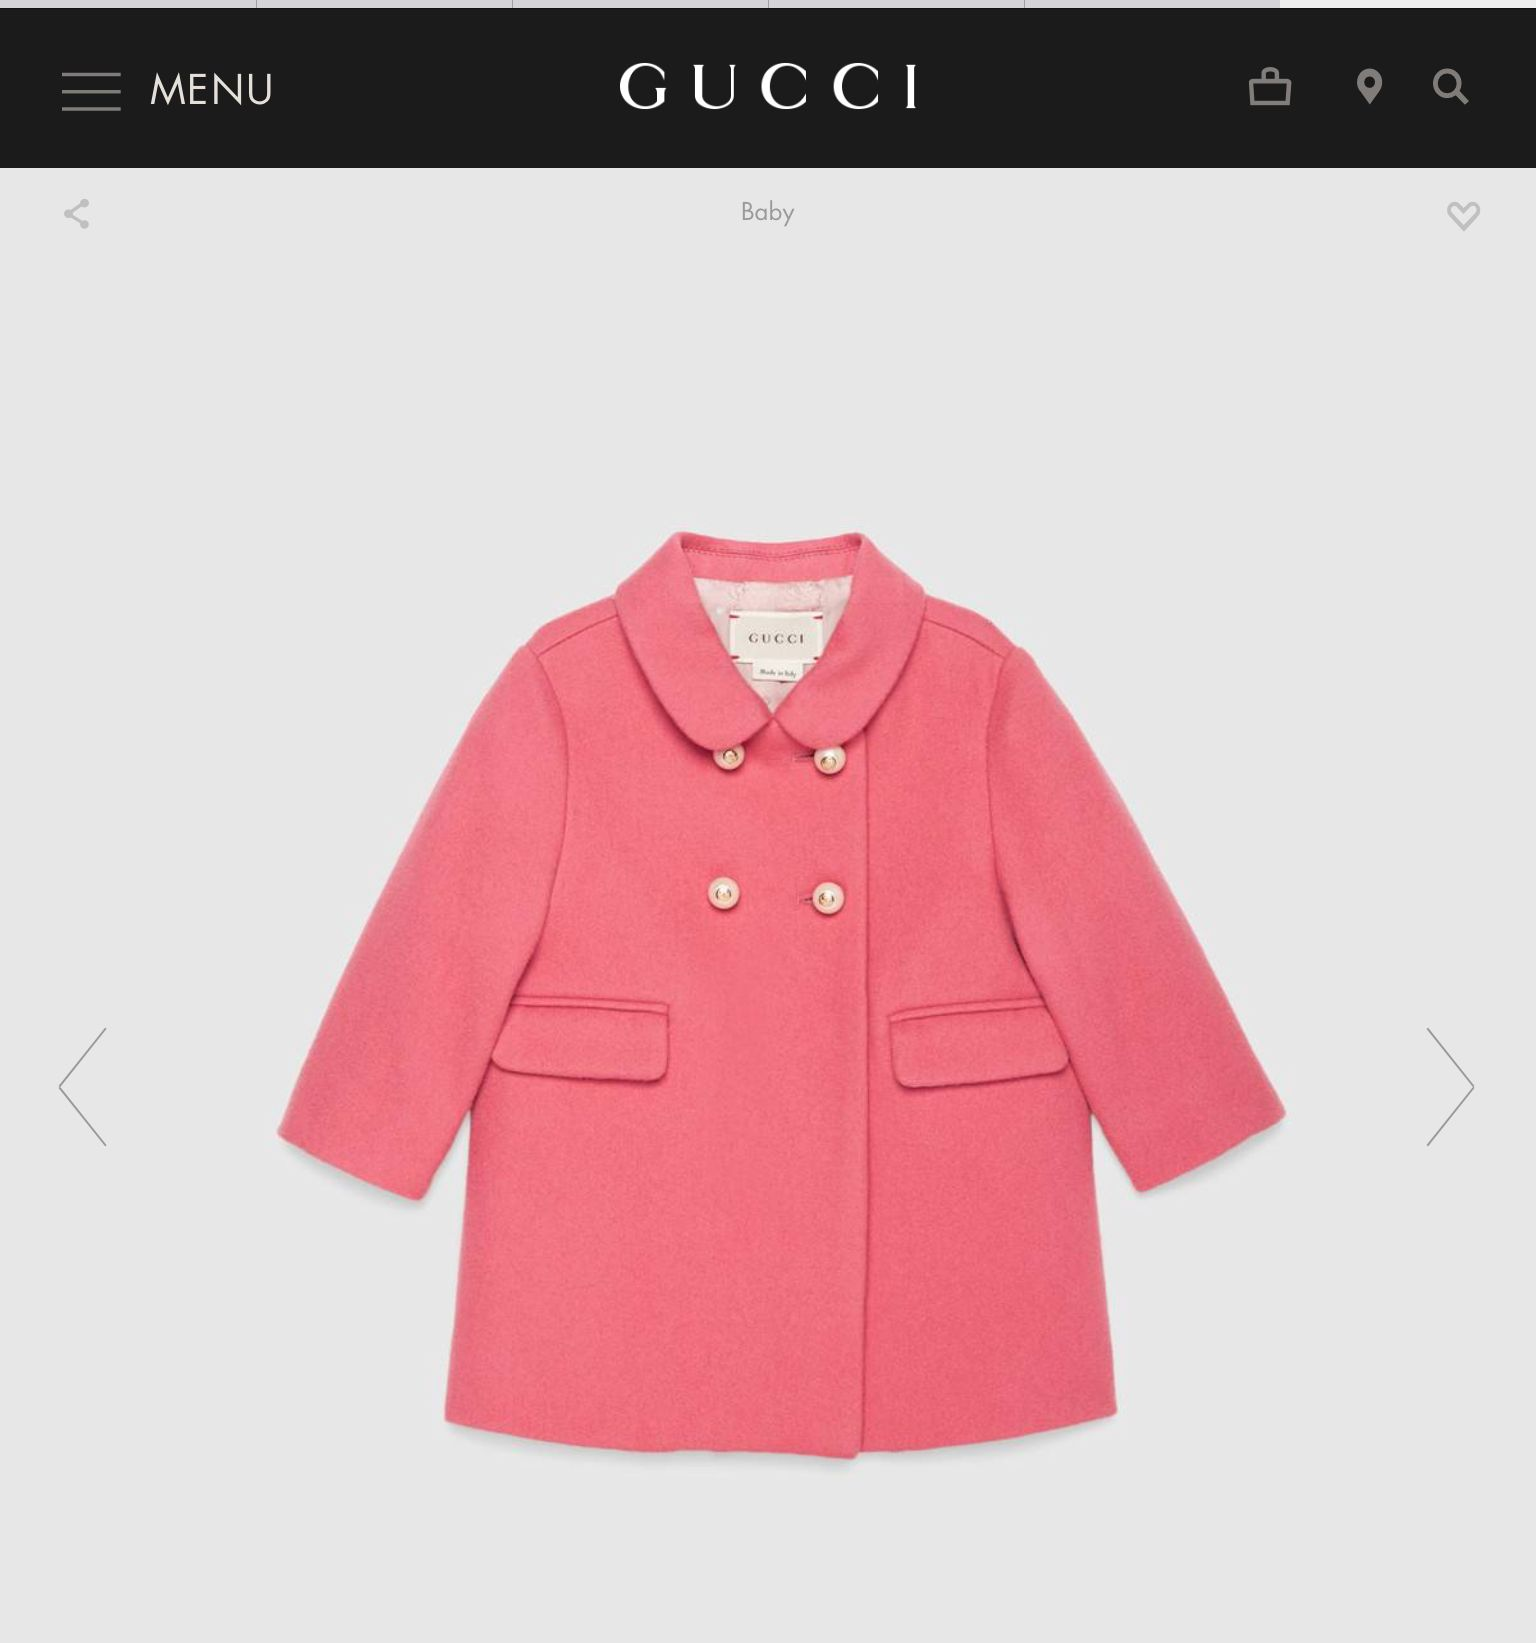 8491408df4 Little girls Gucci coat | THINGS FOR GIRLS | Gucci baby, Gucci coat ...